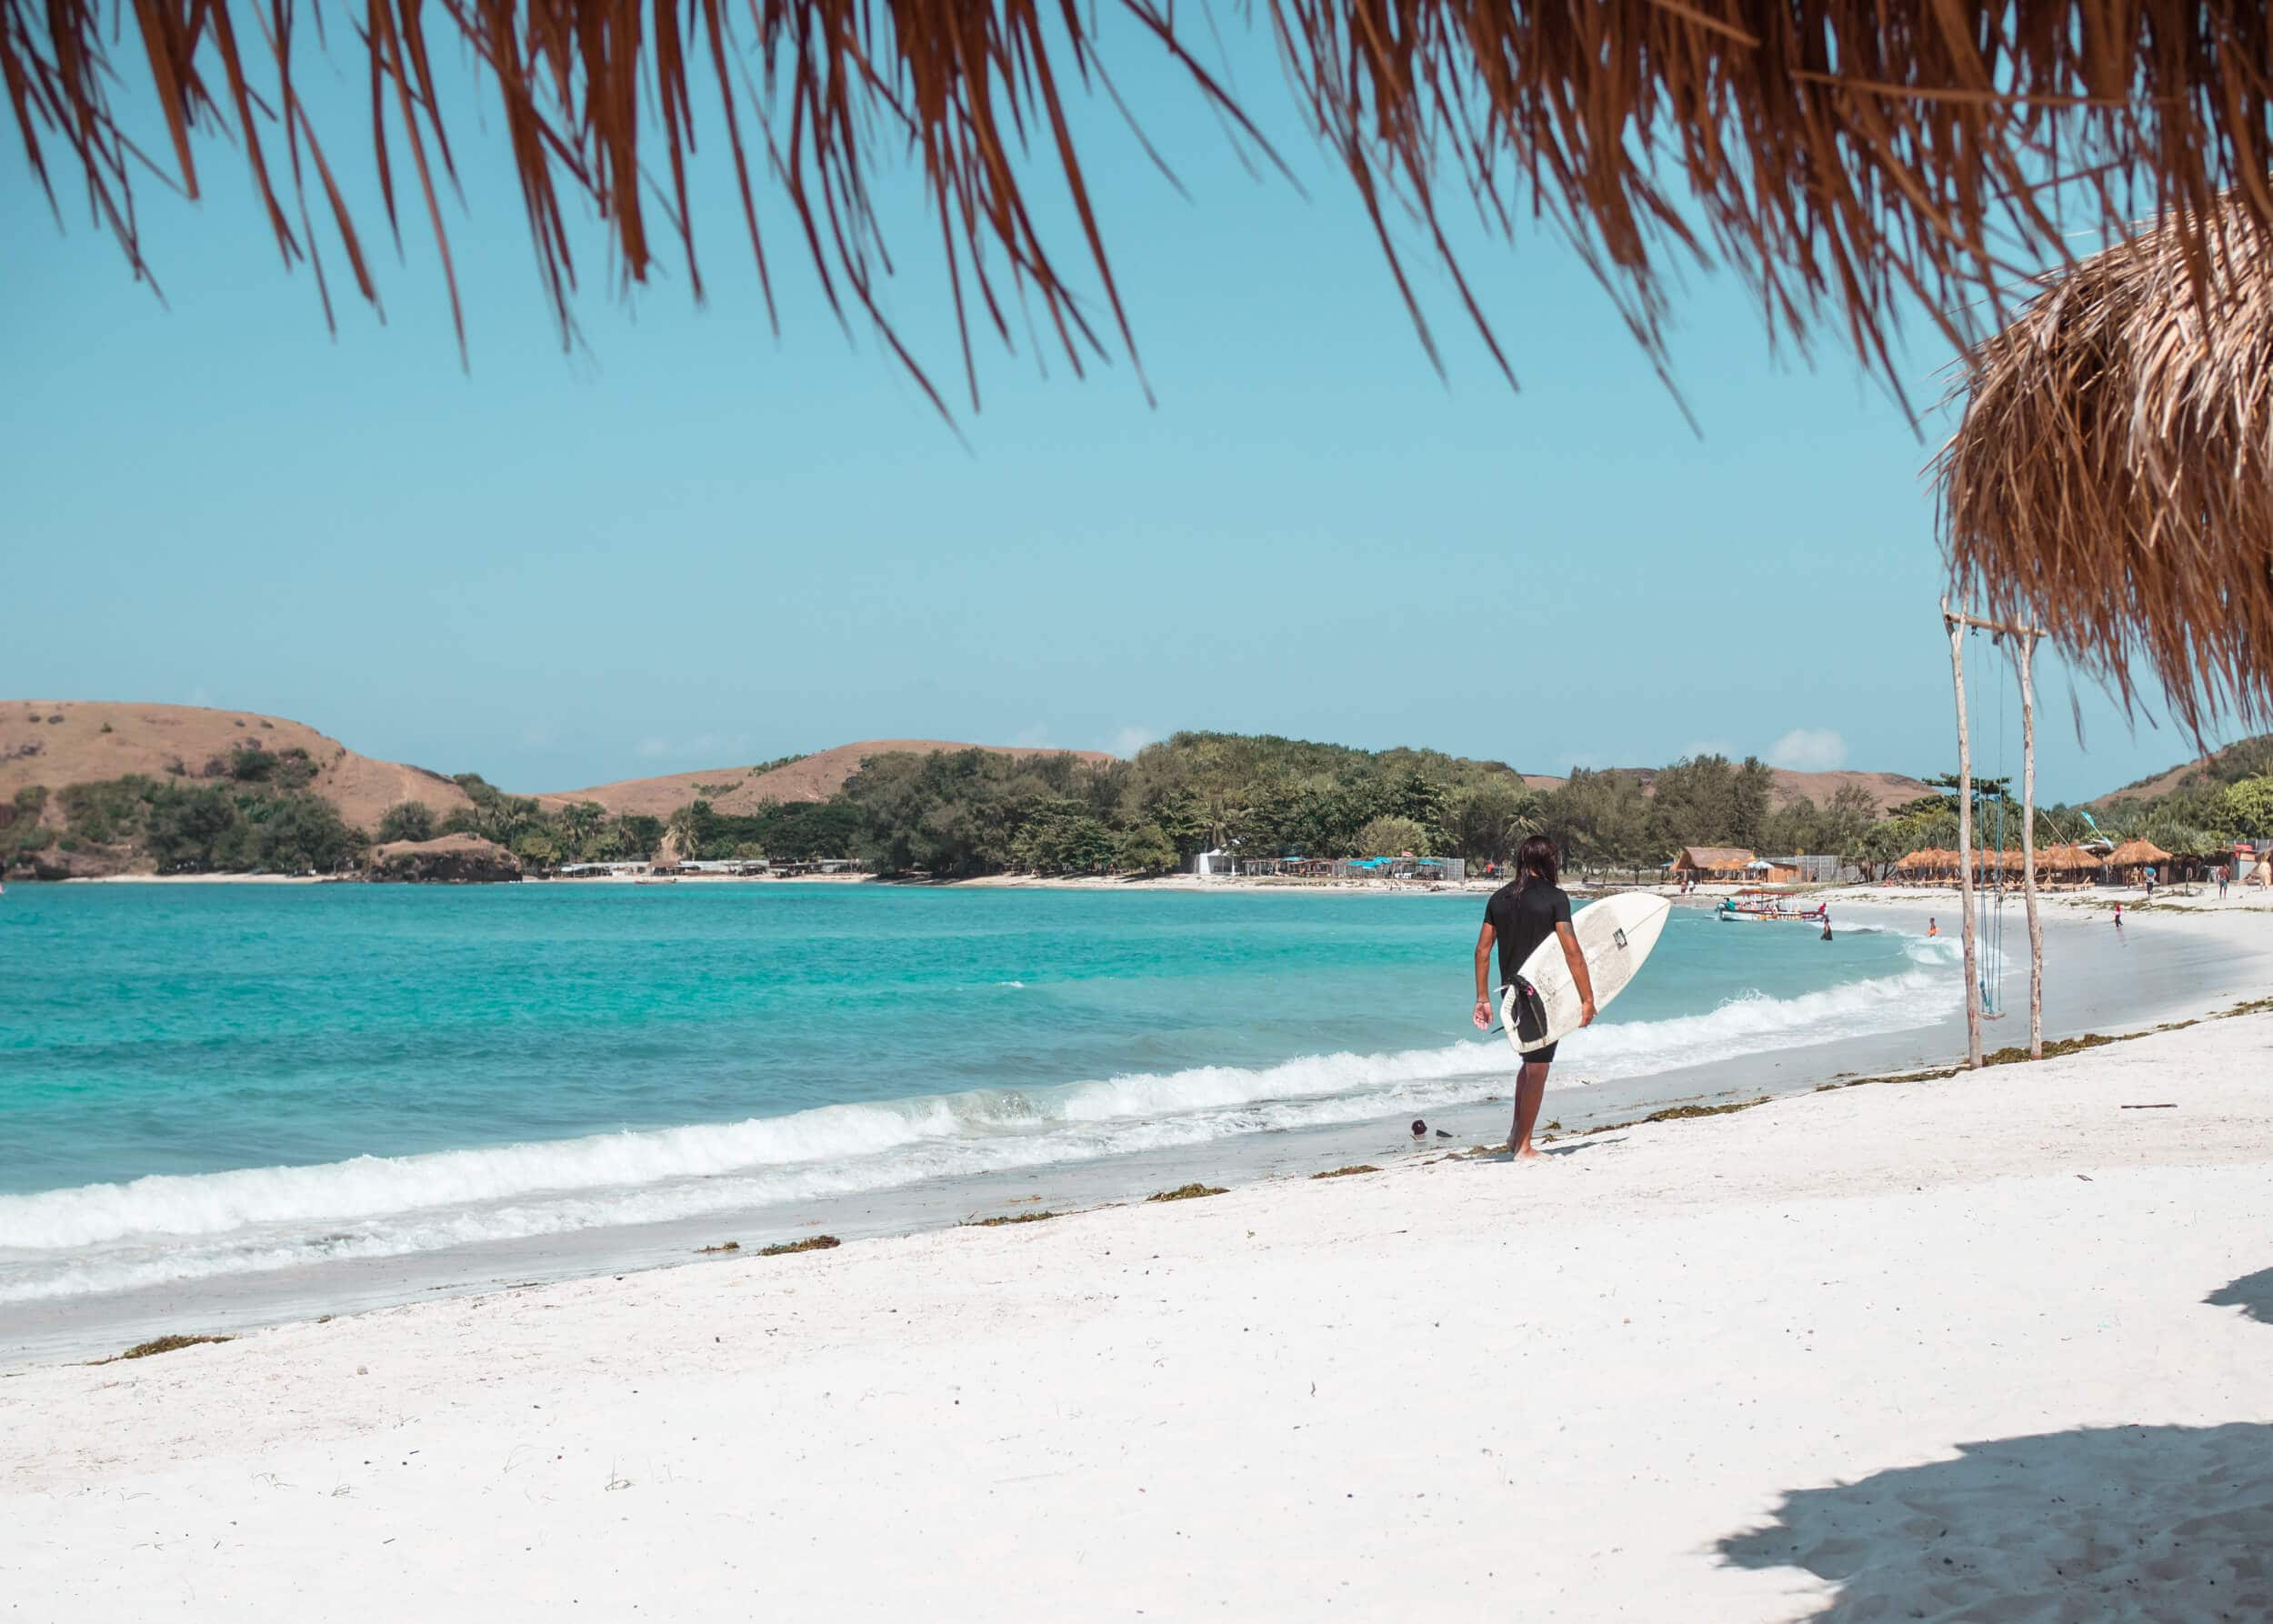 Surfer on Tanjung Aan, the best beach in Lombok